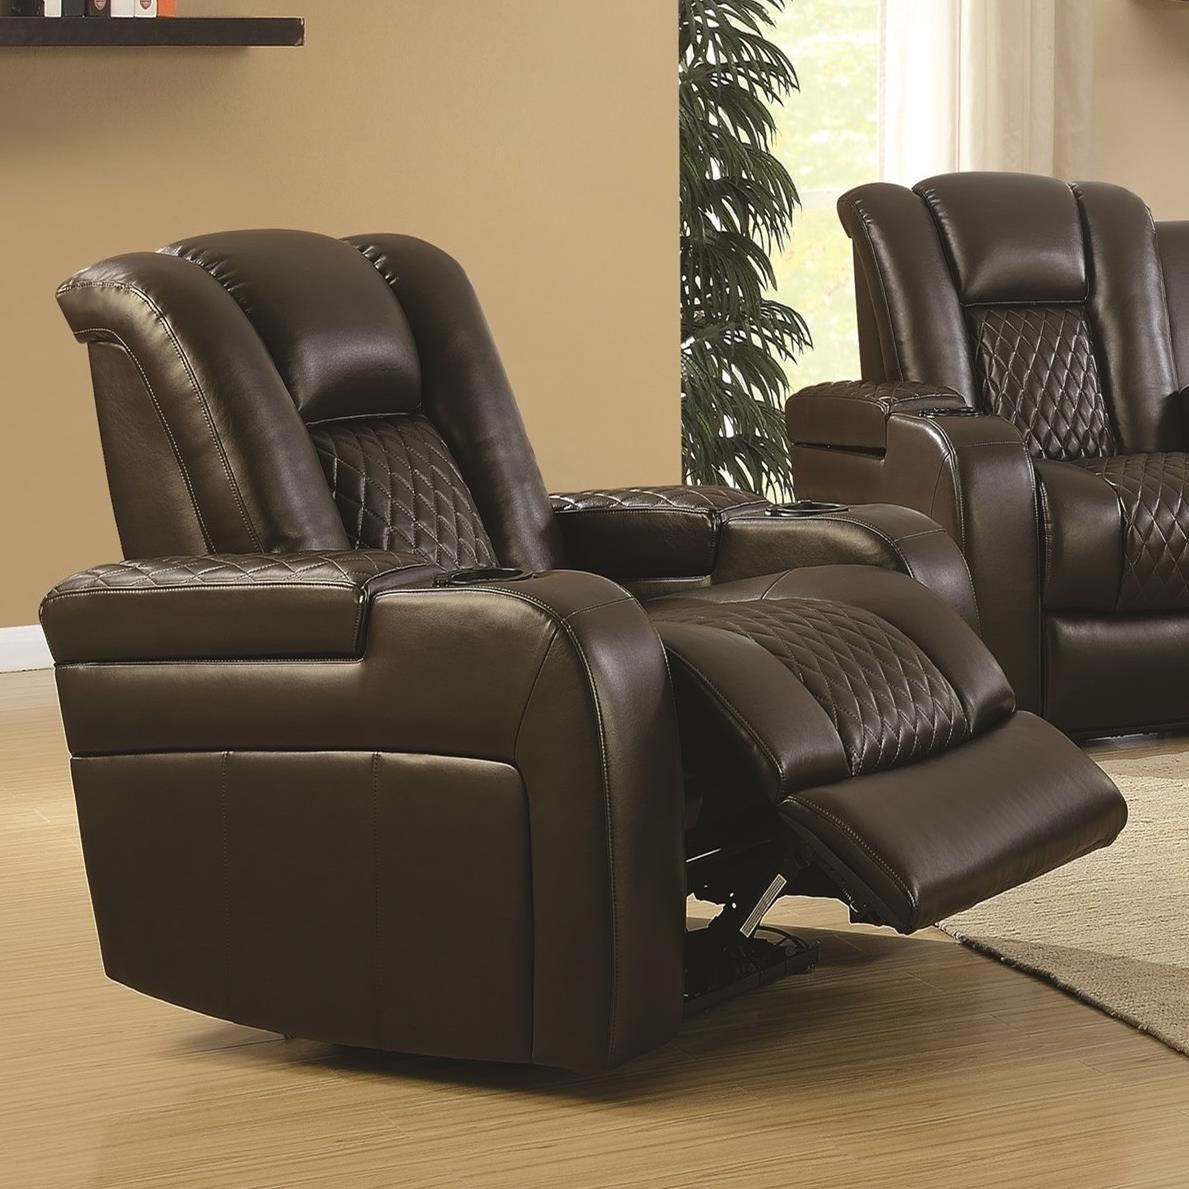 Coaster Delangelo Casual Power Recliner with Cup Holders ...